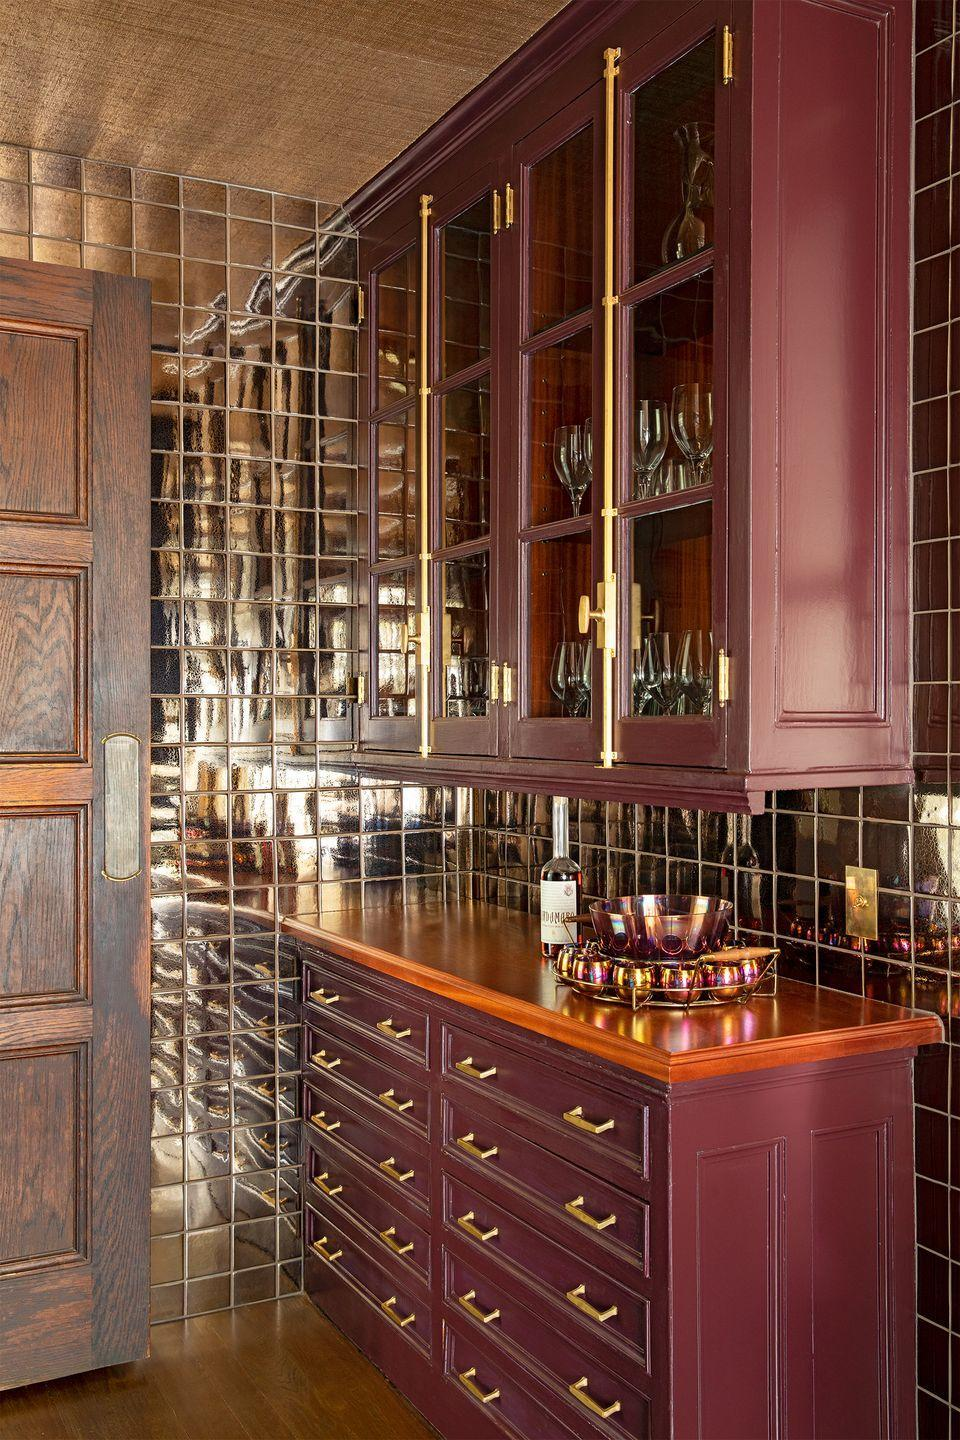 """<p>Paint the cabinets a red wine-inspired hue in an adjacent butler's pantry or entertaining space to set the mood for a tasting. We're digging the smokey mirrored tiles in this space by <a href=""""https://birgittepearcedesign.com/"""" rel=""""nofollow noopener"""" target=""""_blank"""" data-ylk=""""slk:Birgitte Pearce Design"""" class=""""link rapid-noclick-resp"""">Birgitte Pearce Design</a>—they elevate the entire experience. </p>"""